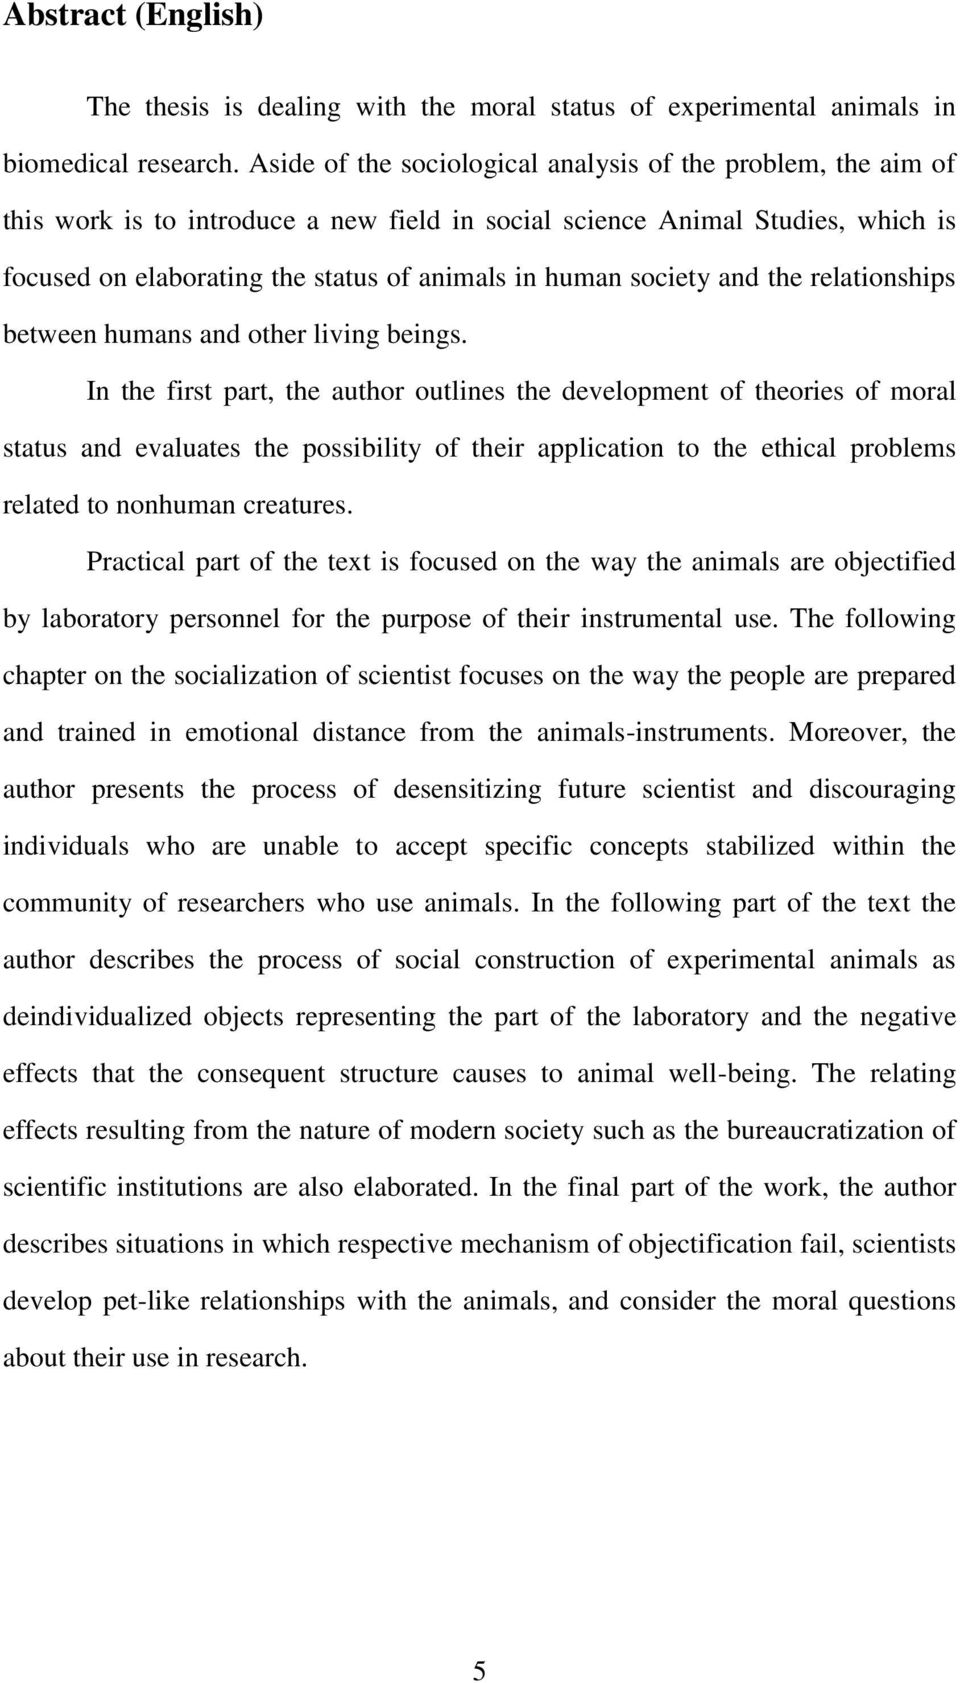 society and the relationships between humans and other living beings.